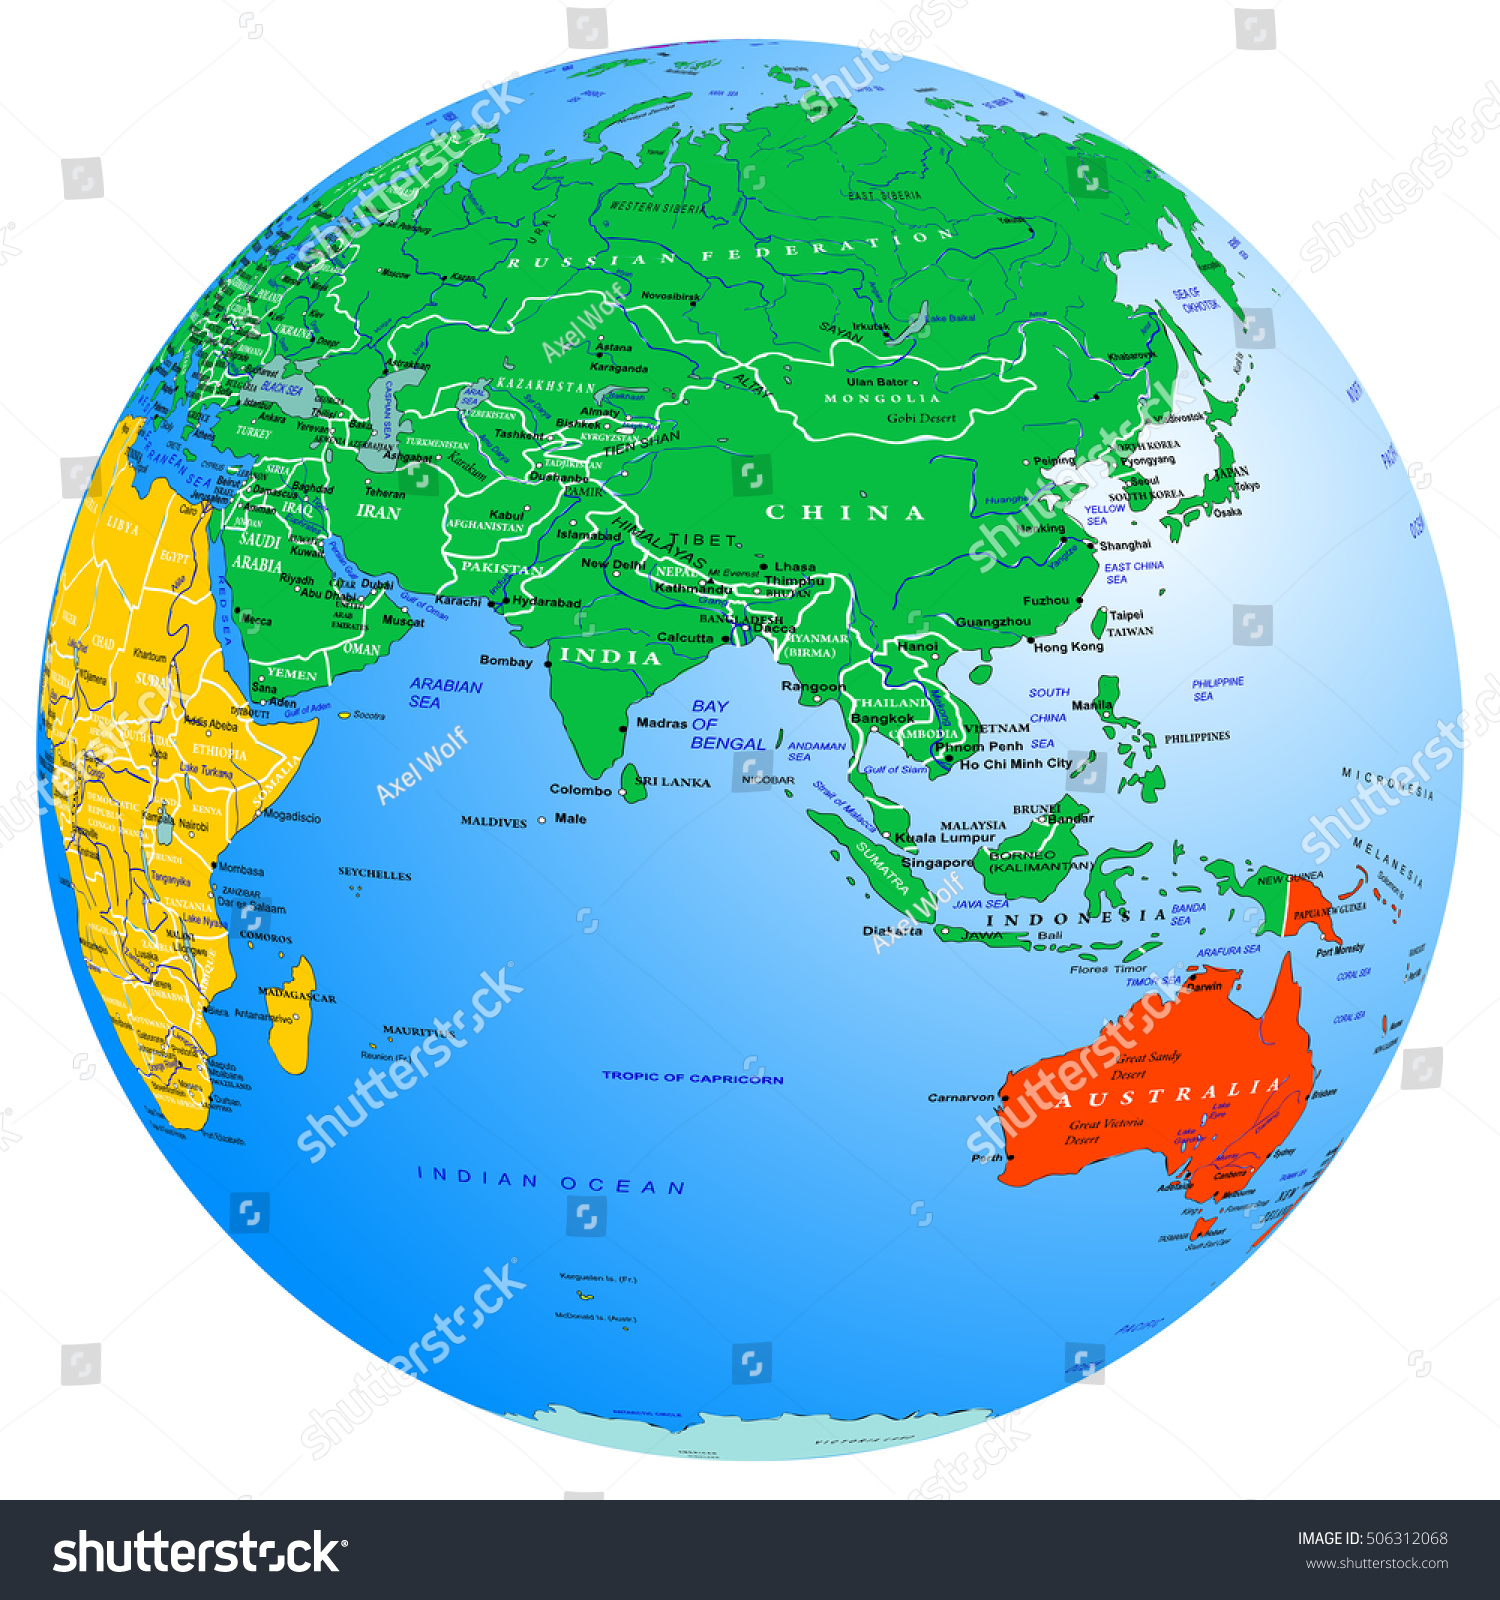 World map continents countries globe planet vectores en stock world map continents countries globe planet vectores en stock 506312068 shutterstock gumiabroncs